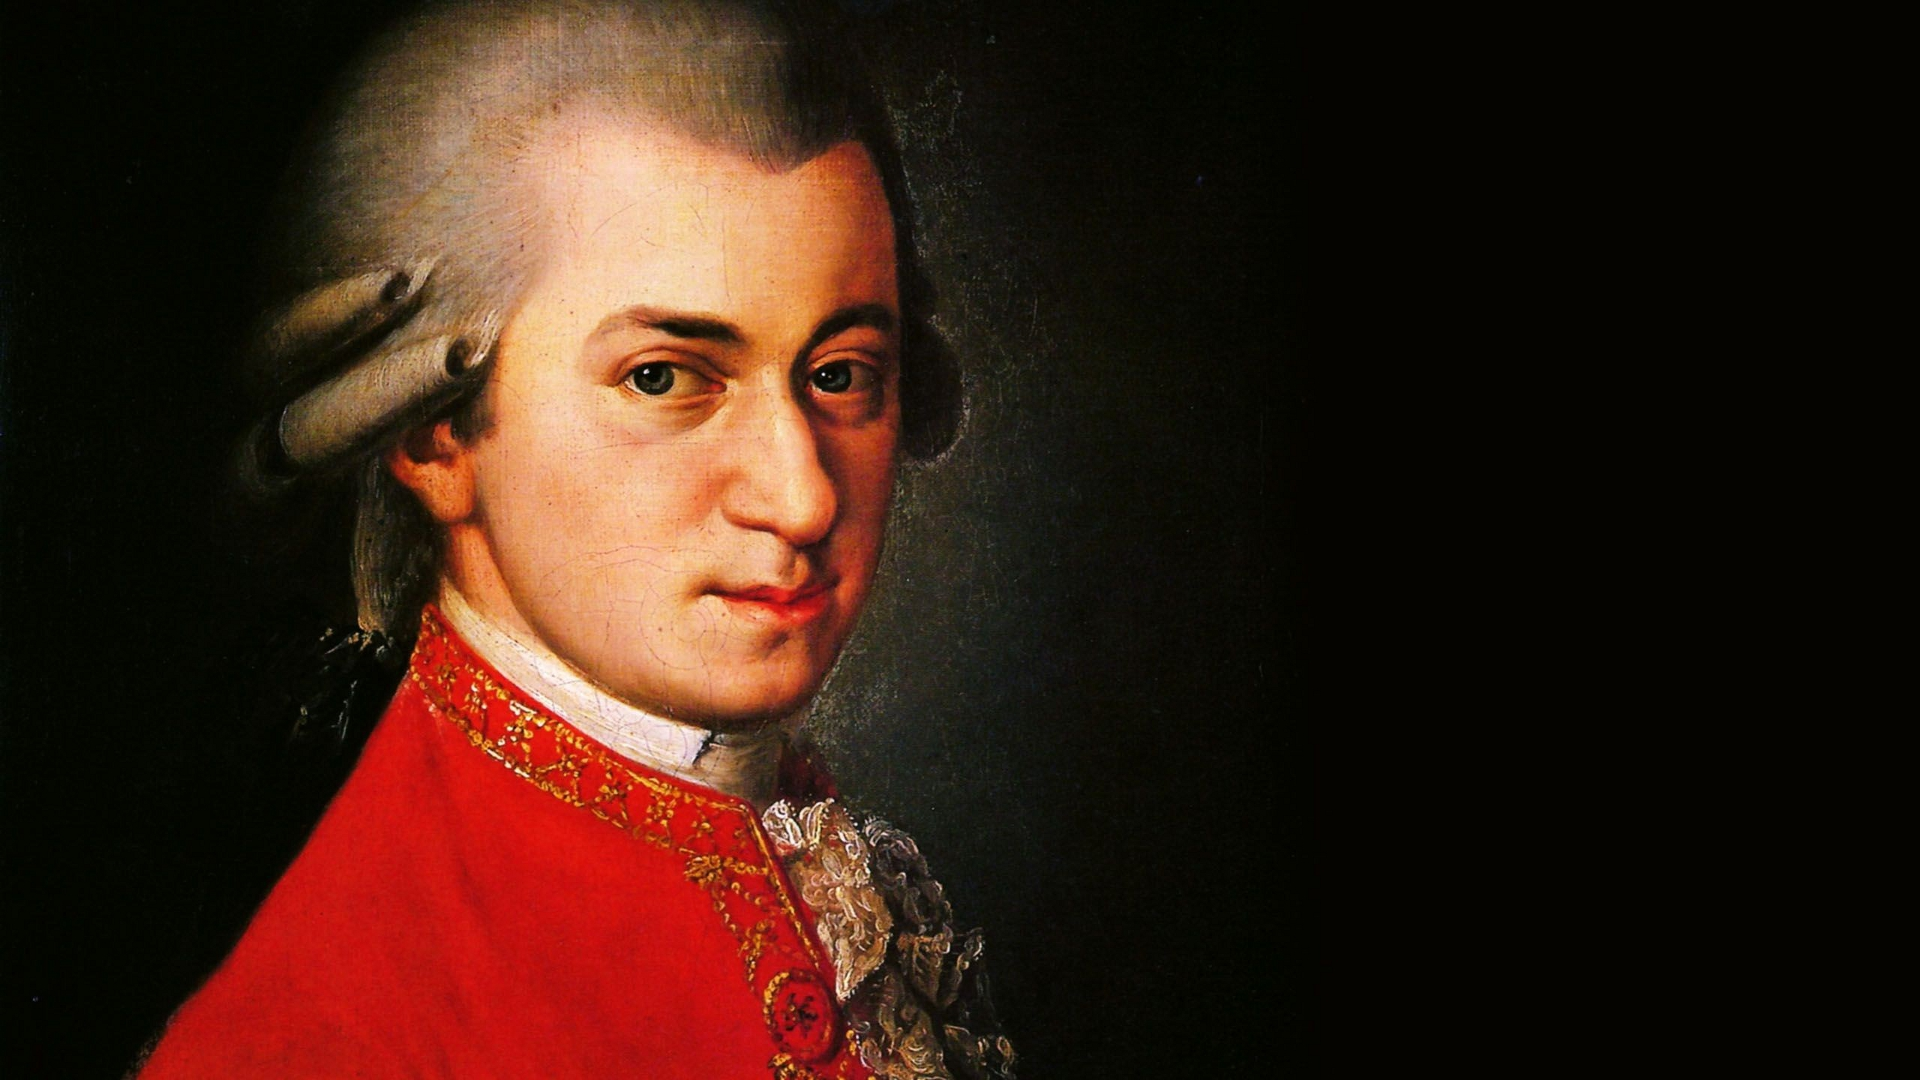 Mozart facts